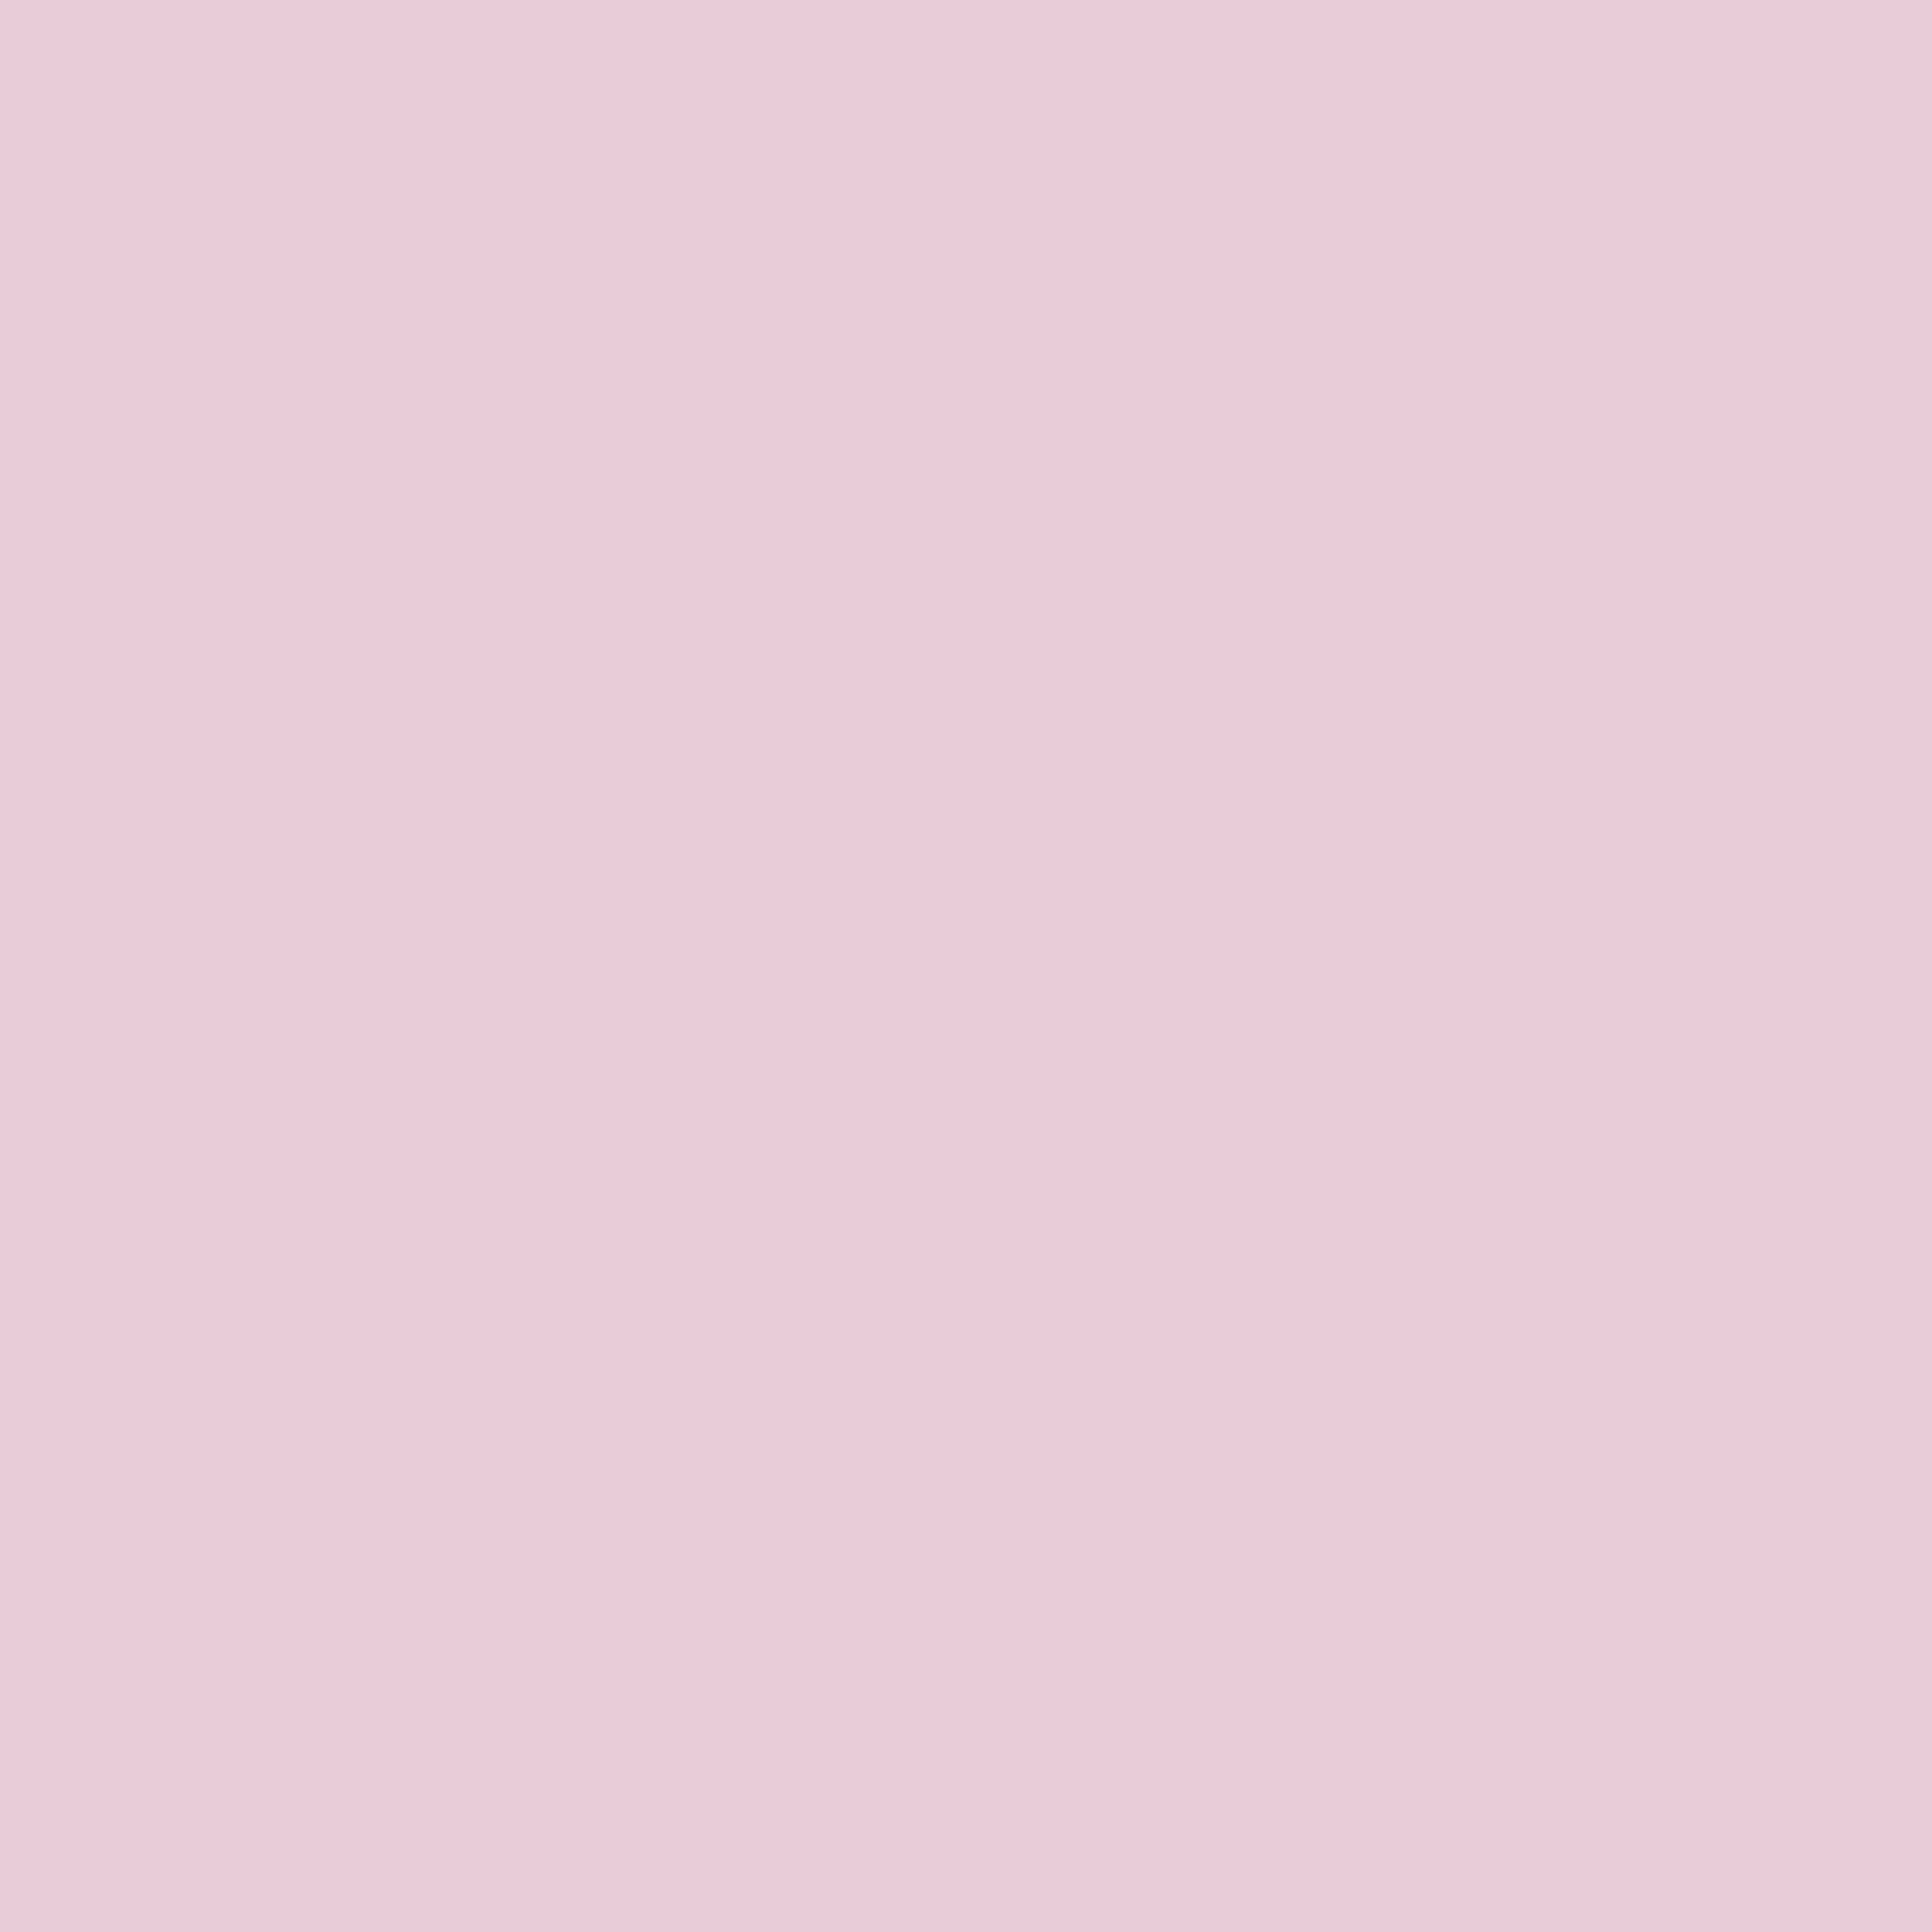 2732x2732 Queen Pink Solid Color Background